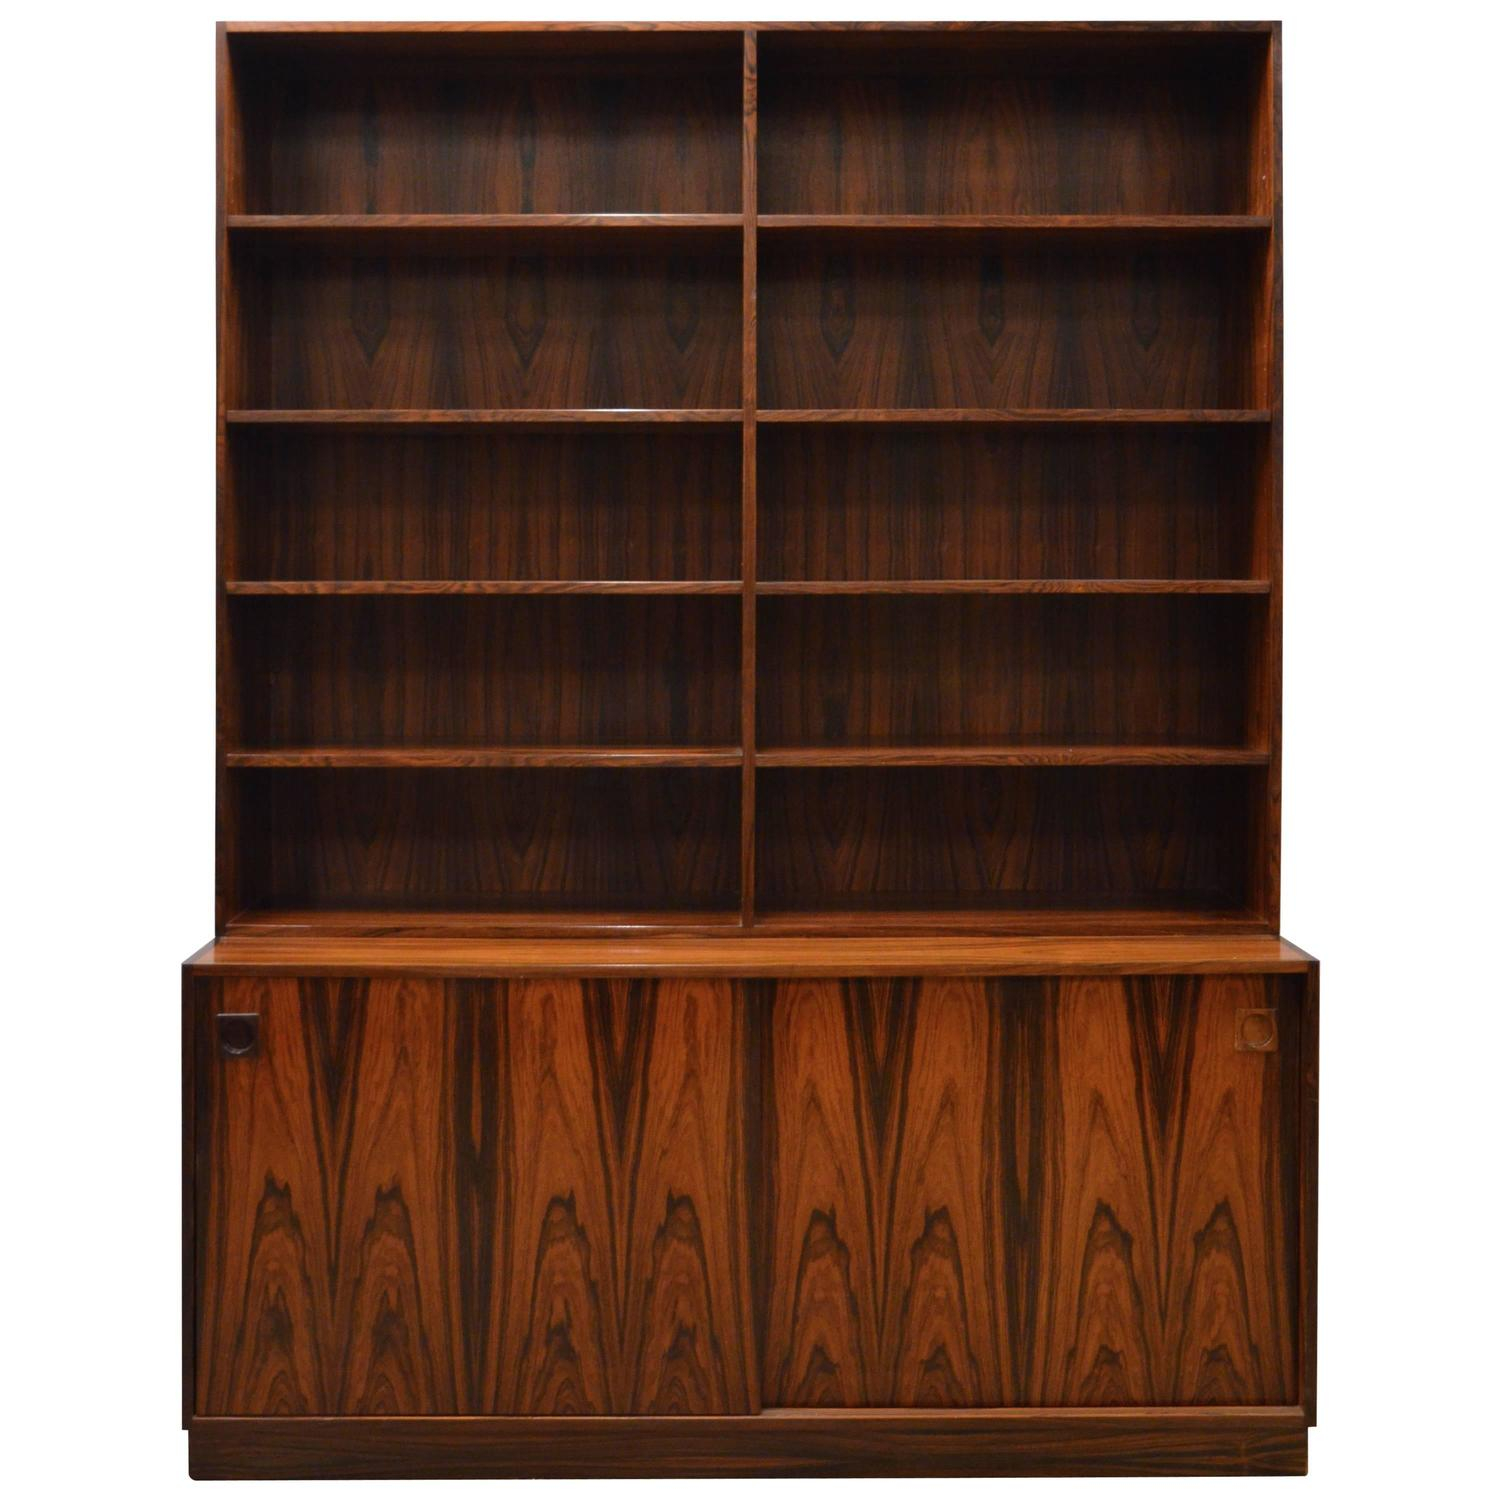 Modern room divider bookcase - Mid Century Modern Danish Rosewood Bookcase